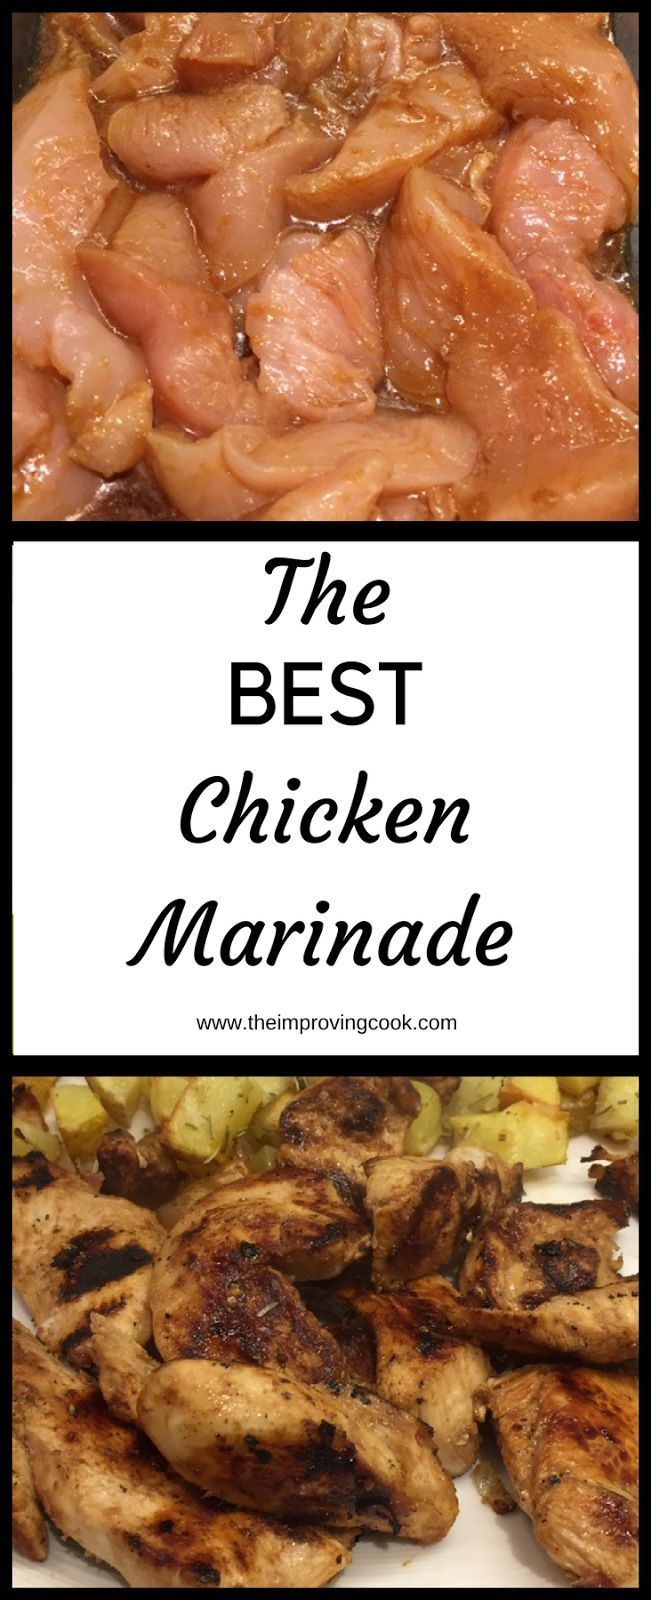 The Improving Cook- The Best Chicken Marinade. This simple marinade is amazingly delicious. A recipe with a few simple ingredients but they add massive amounts of flavour to the chicken. try it and you won't be disappointed!